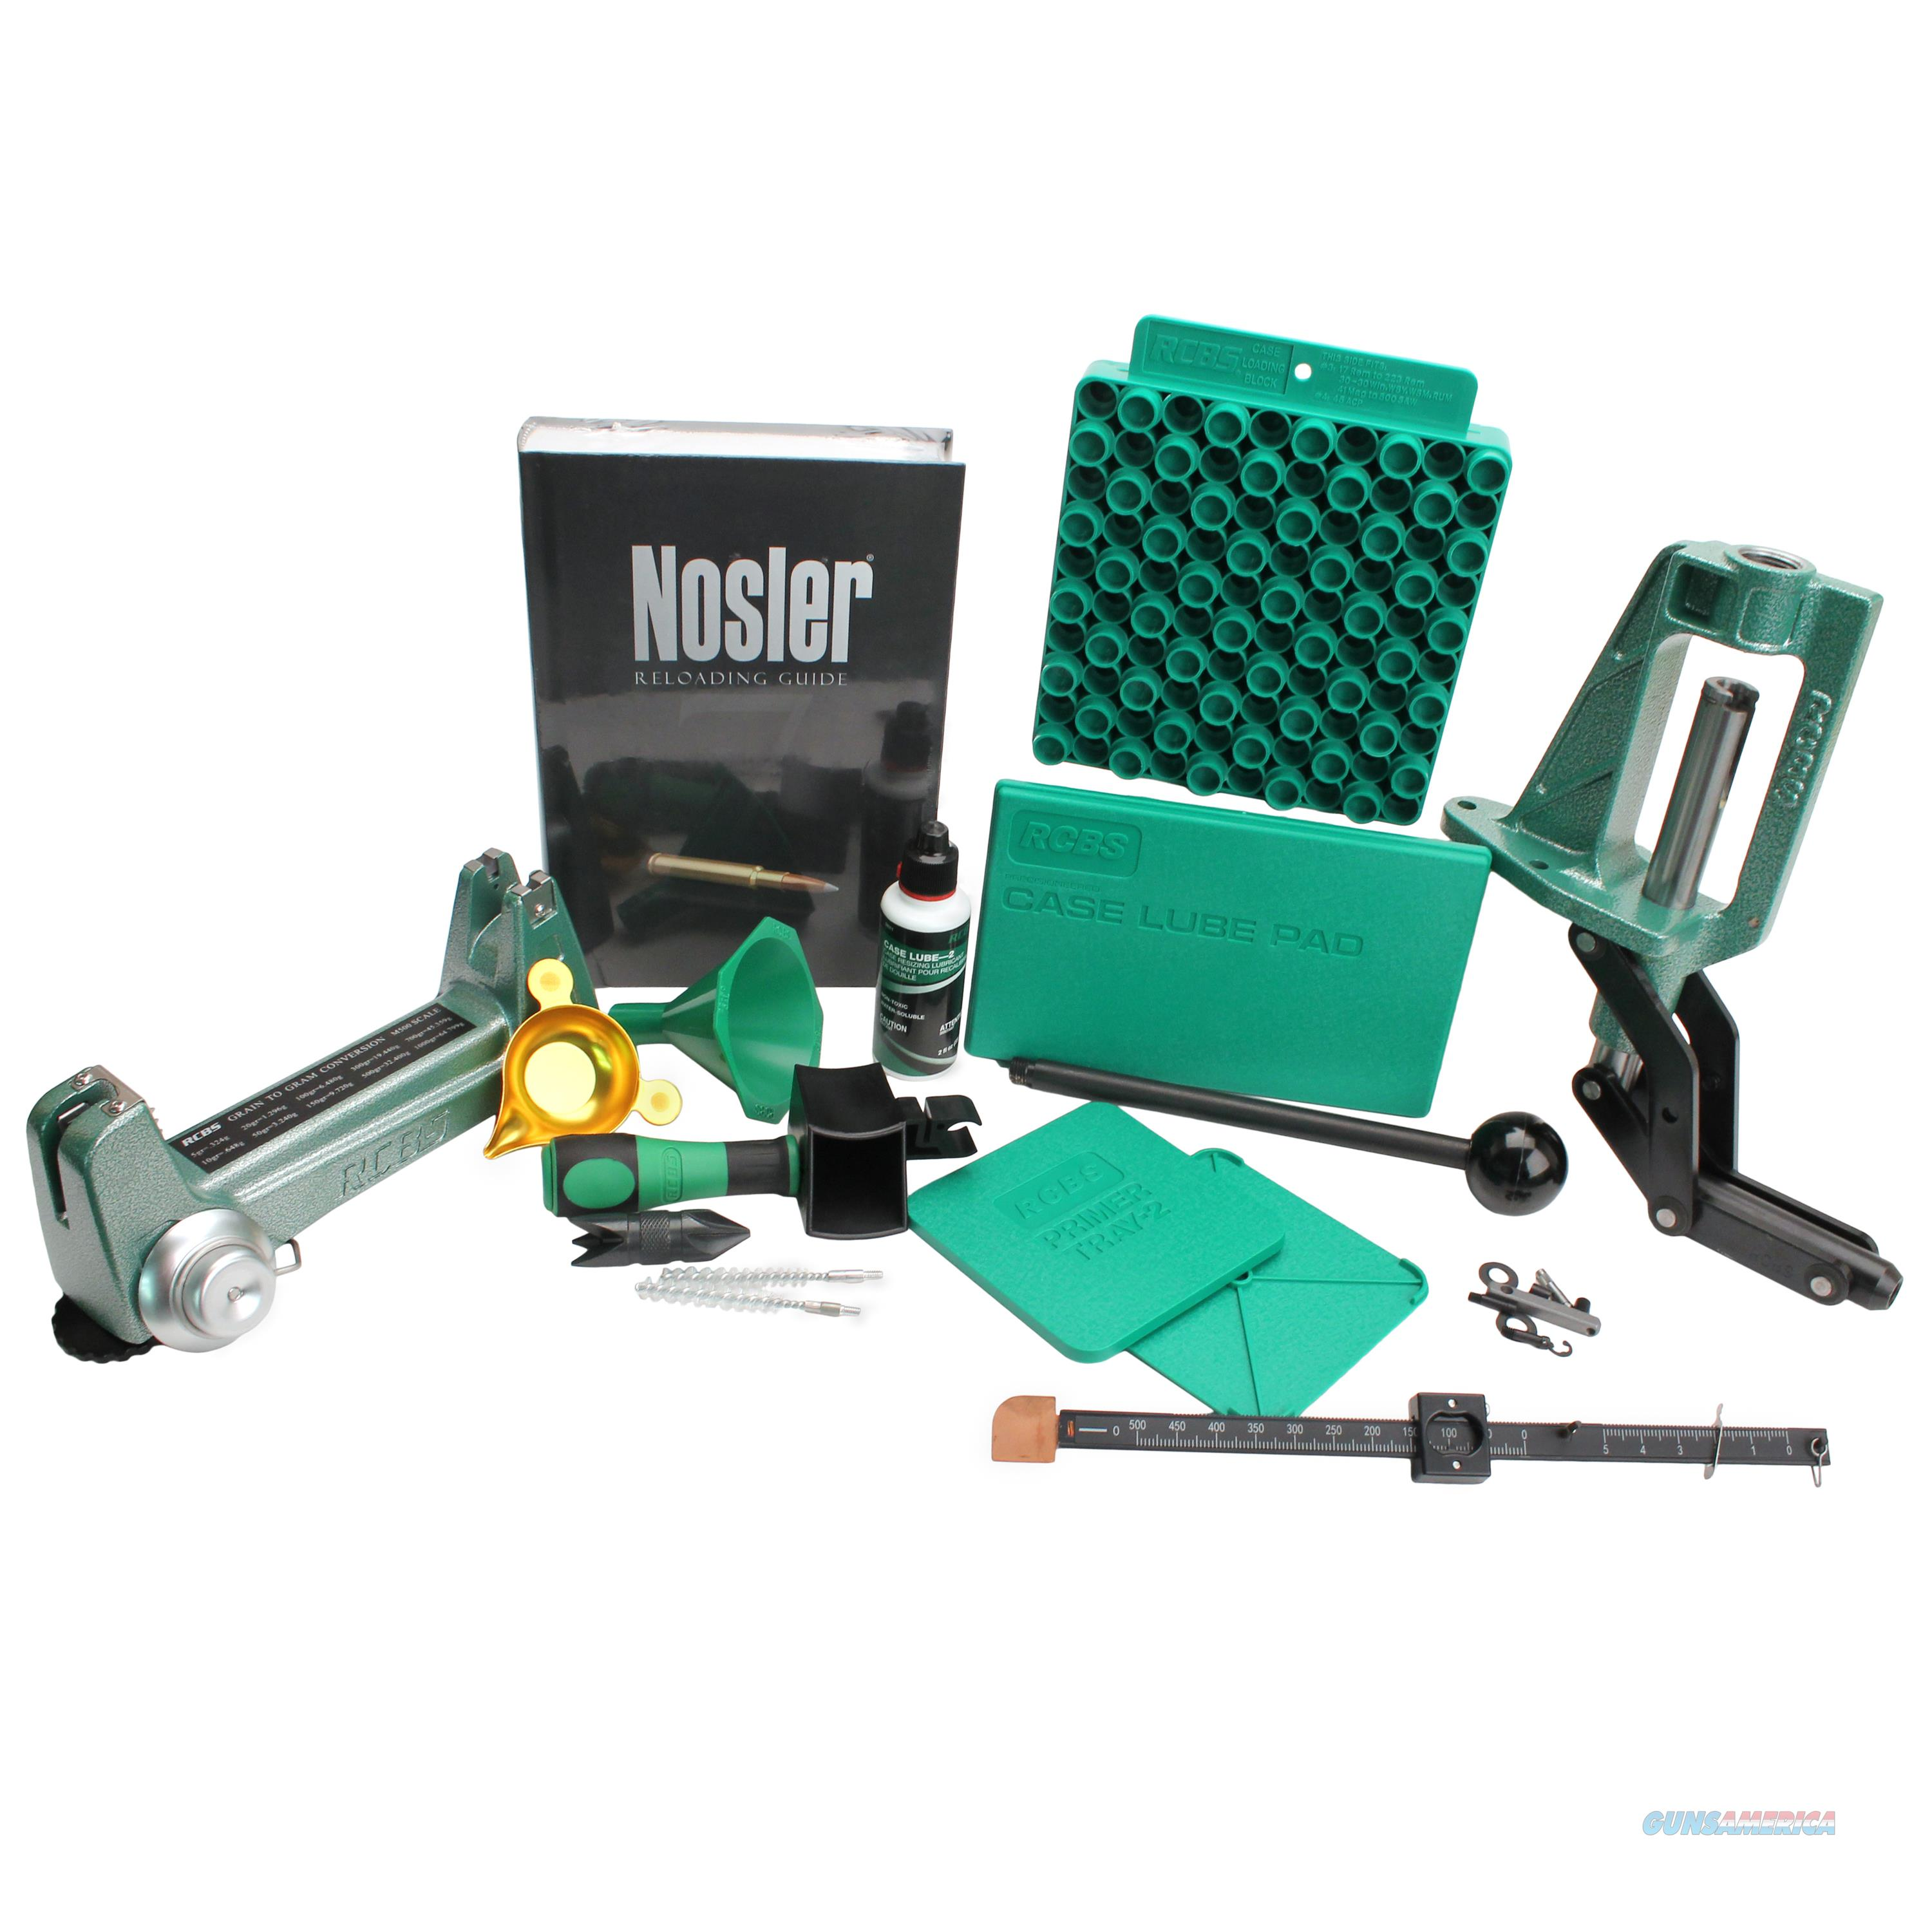 Rcbs Partner Press Reloading Kit 87469  Non-Guns > Reloading > Equipment > Metallic > Misc